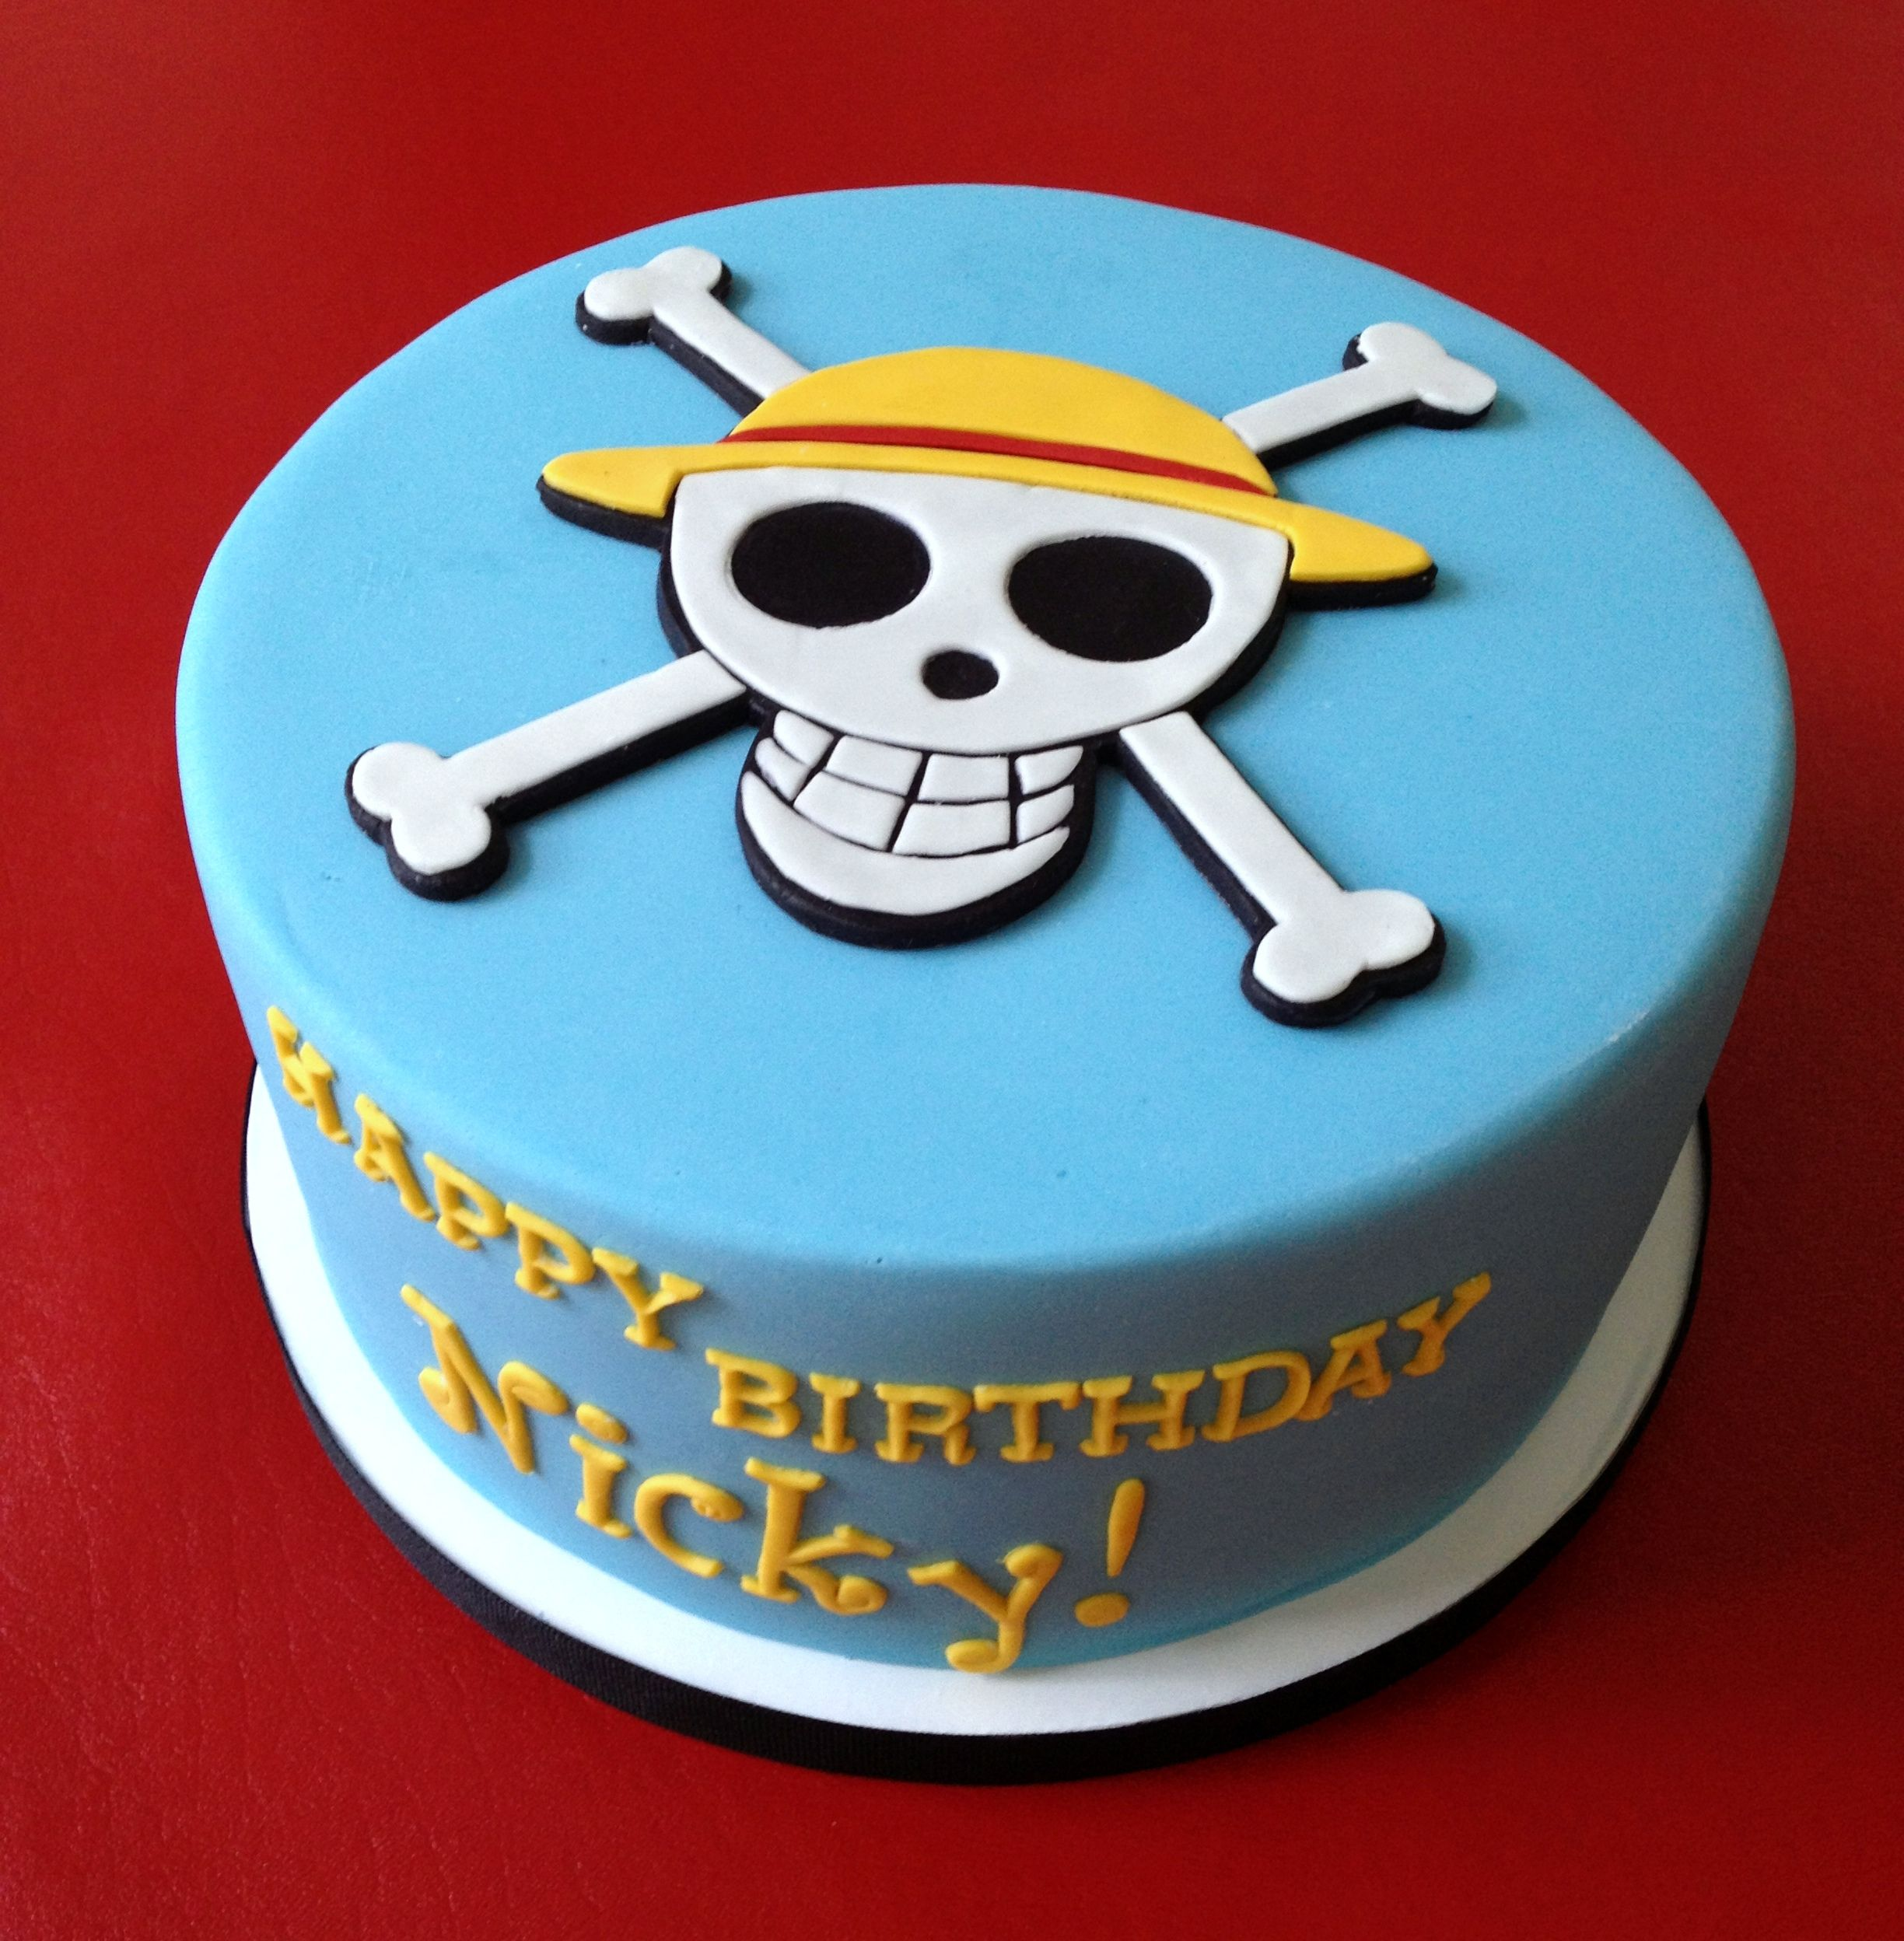 Cake ideas on pinterest pirate cakes marshmallow fondant and - One Piece Anime Cake All Marshmallow Fondant Recipe At Http